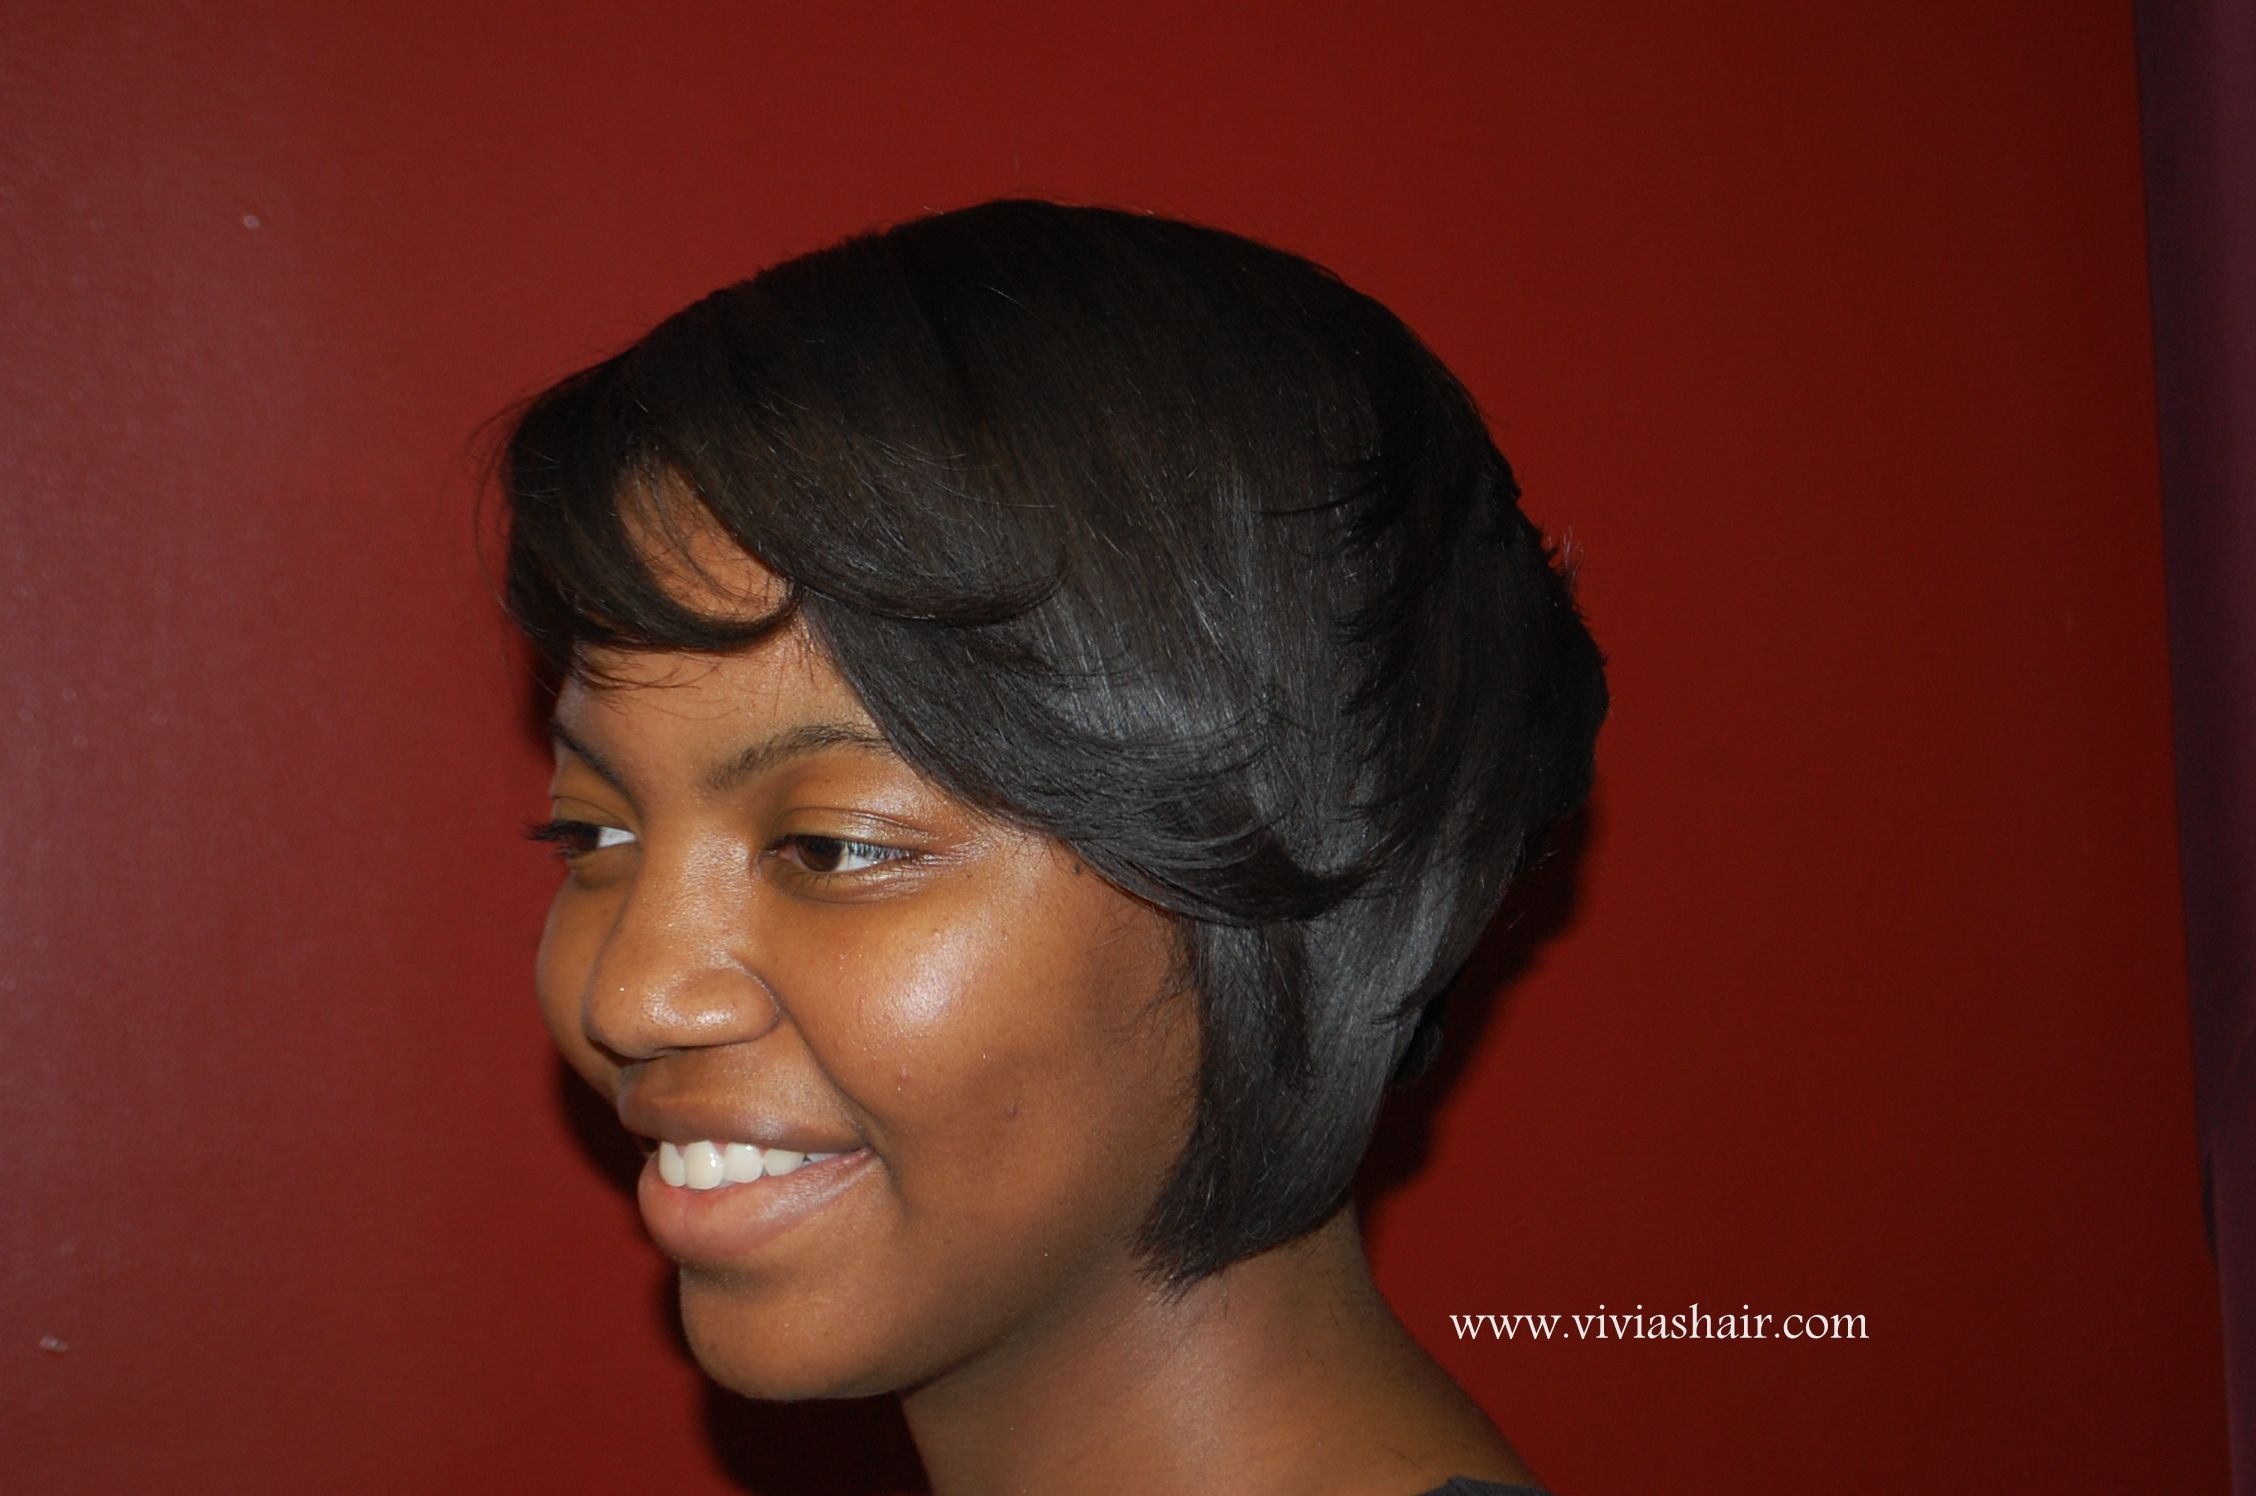 Hair Salon Woodbridge Va 571 402 5550 African Hair Extensions African Hairstyles Hair Extension Salon